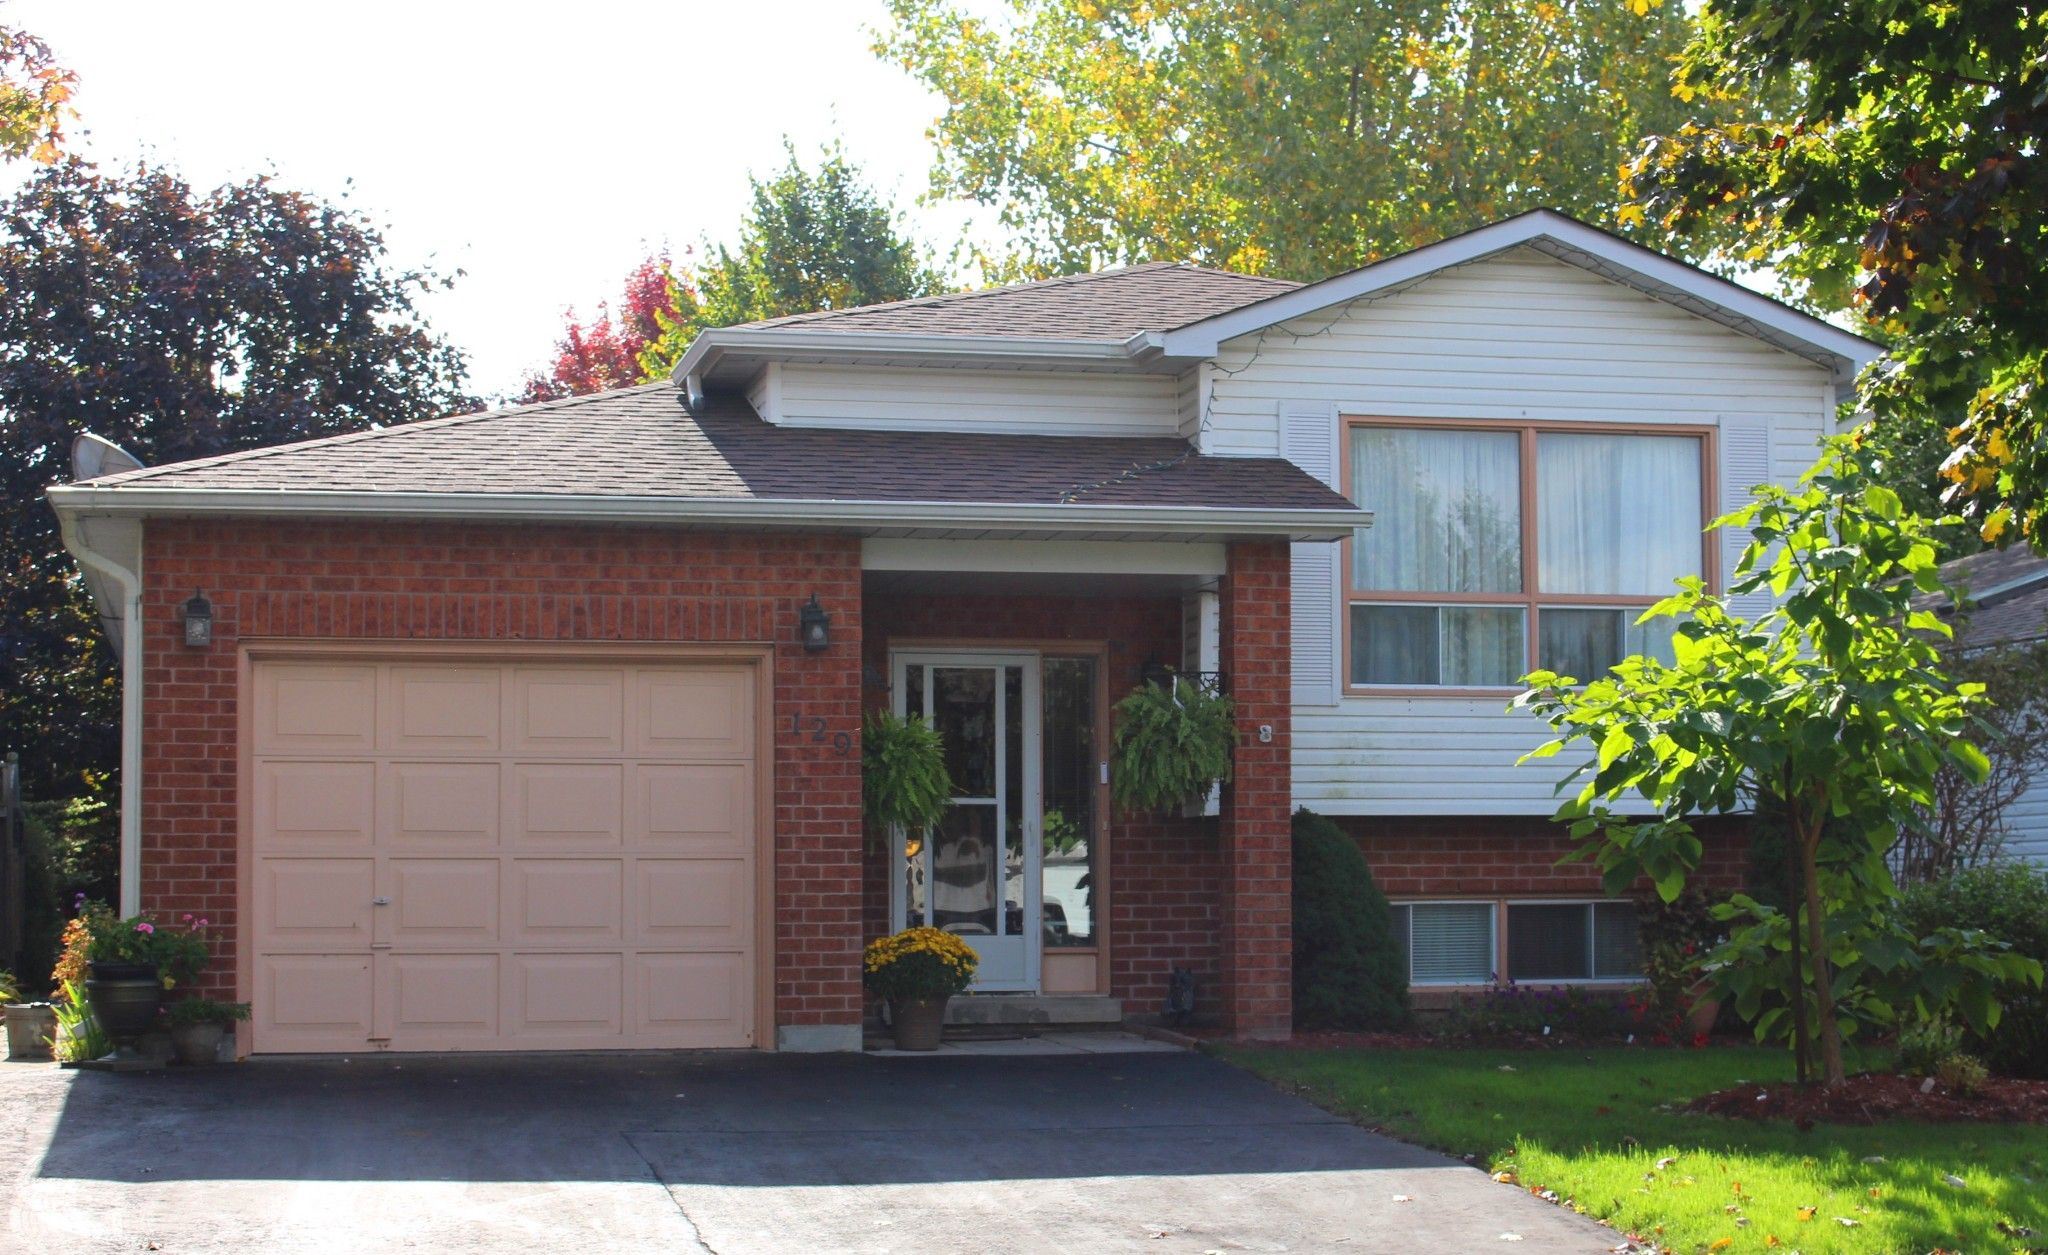 Main Photo: 129 Gillett Court in Cobourg: House for sale : MLS®# 159100